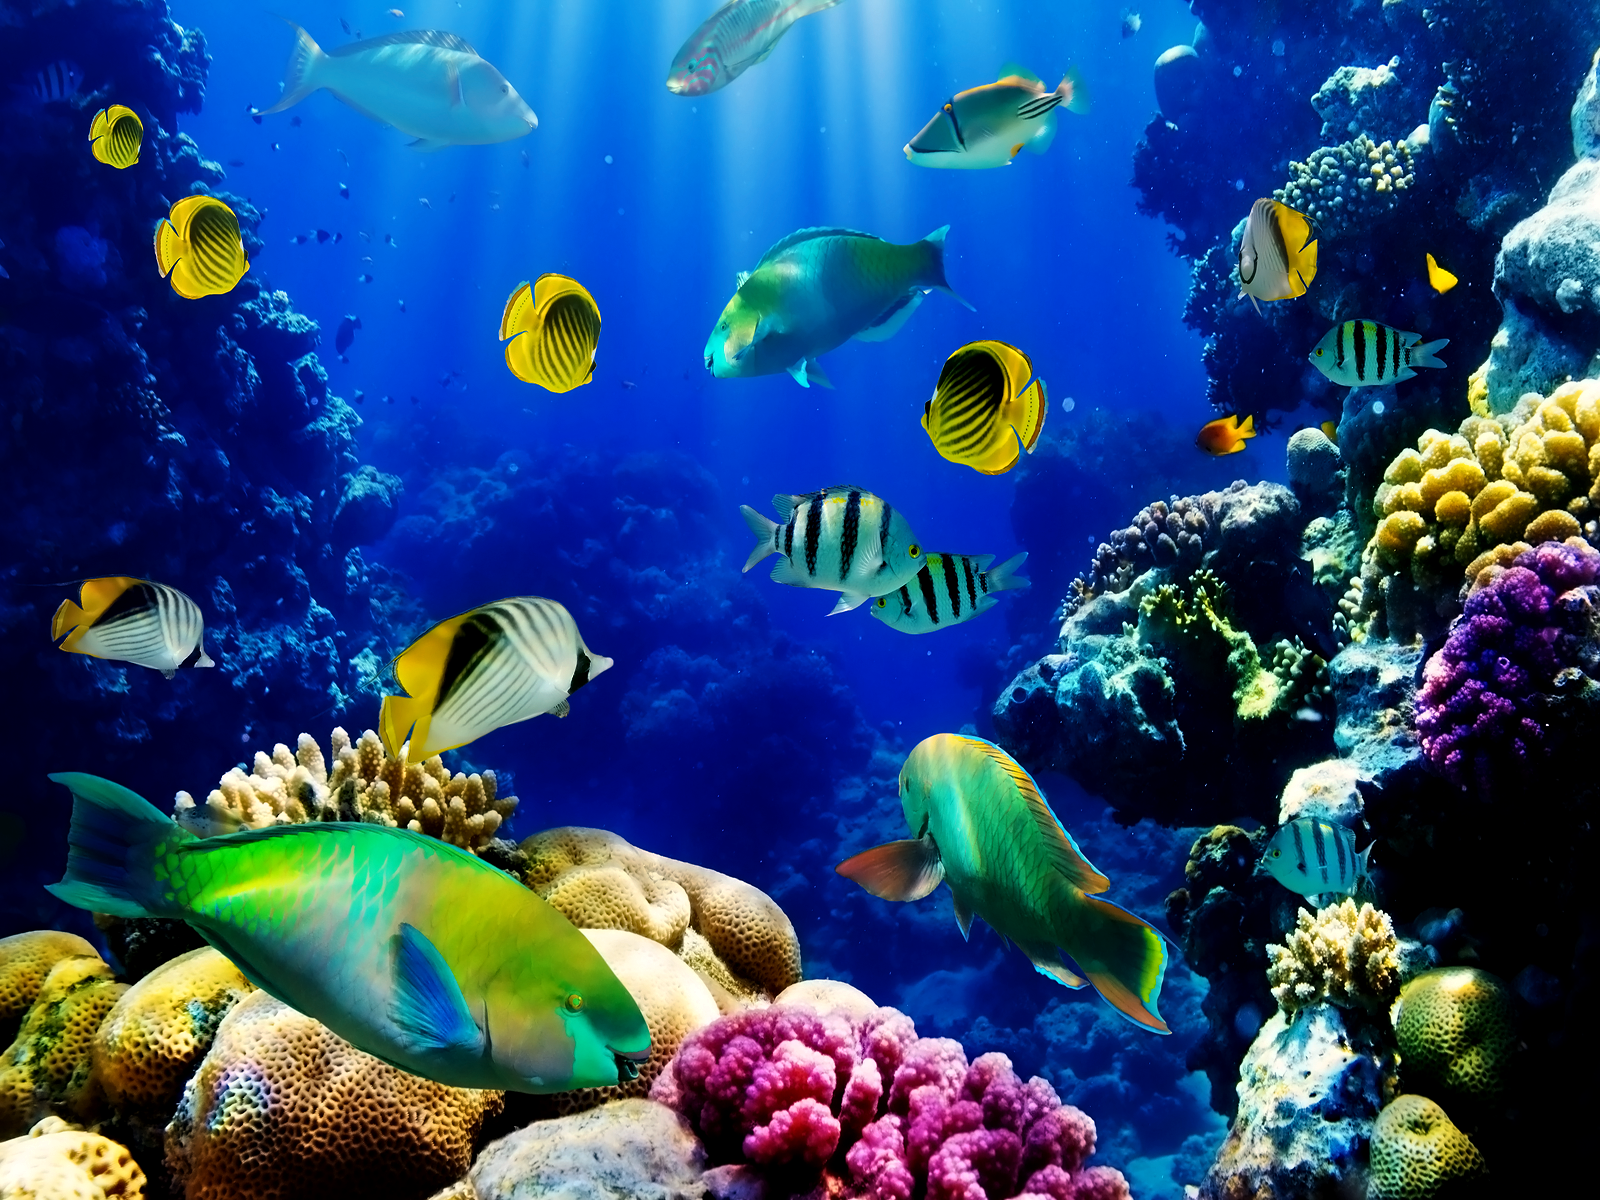 Fish Aquarium - Fish aquarium wallpaper wallpapersafari